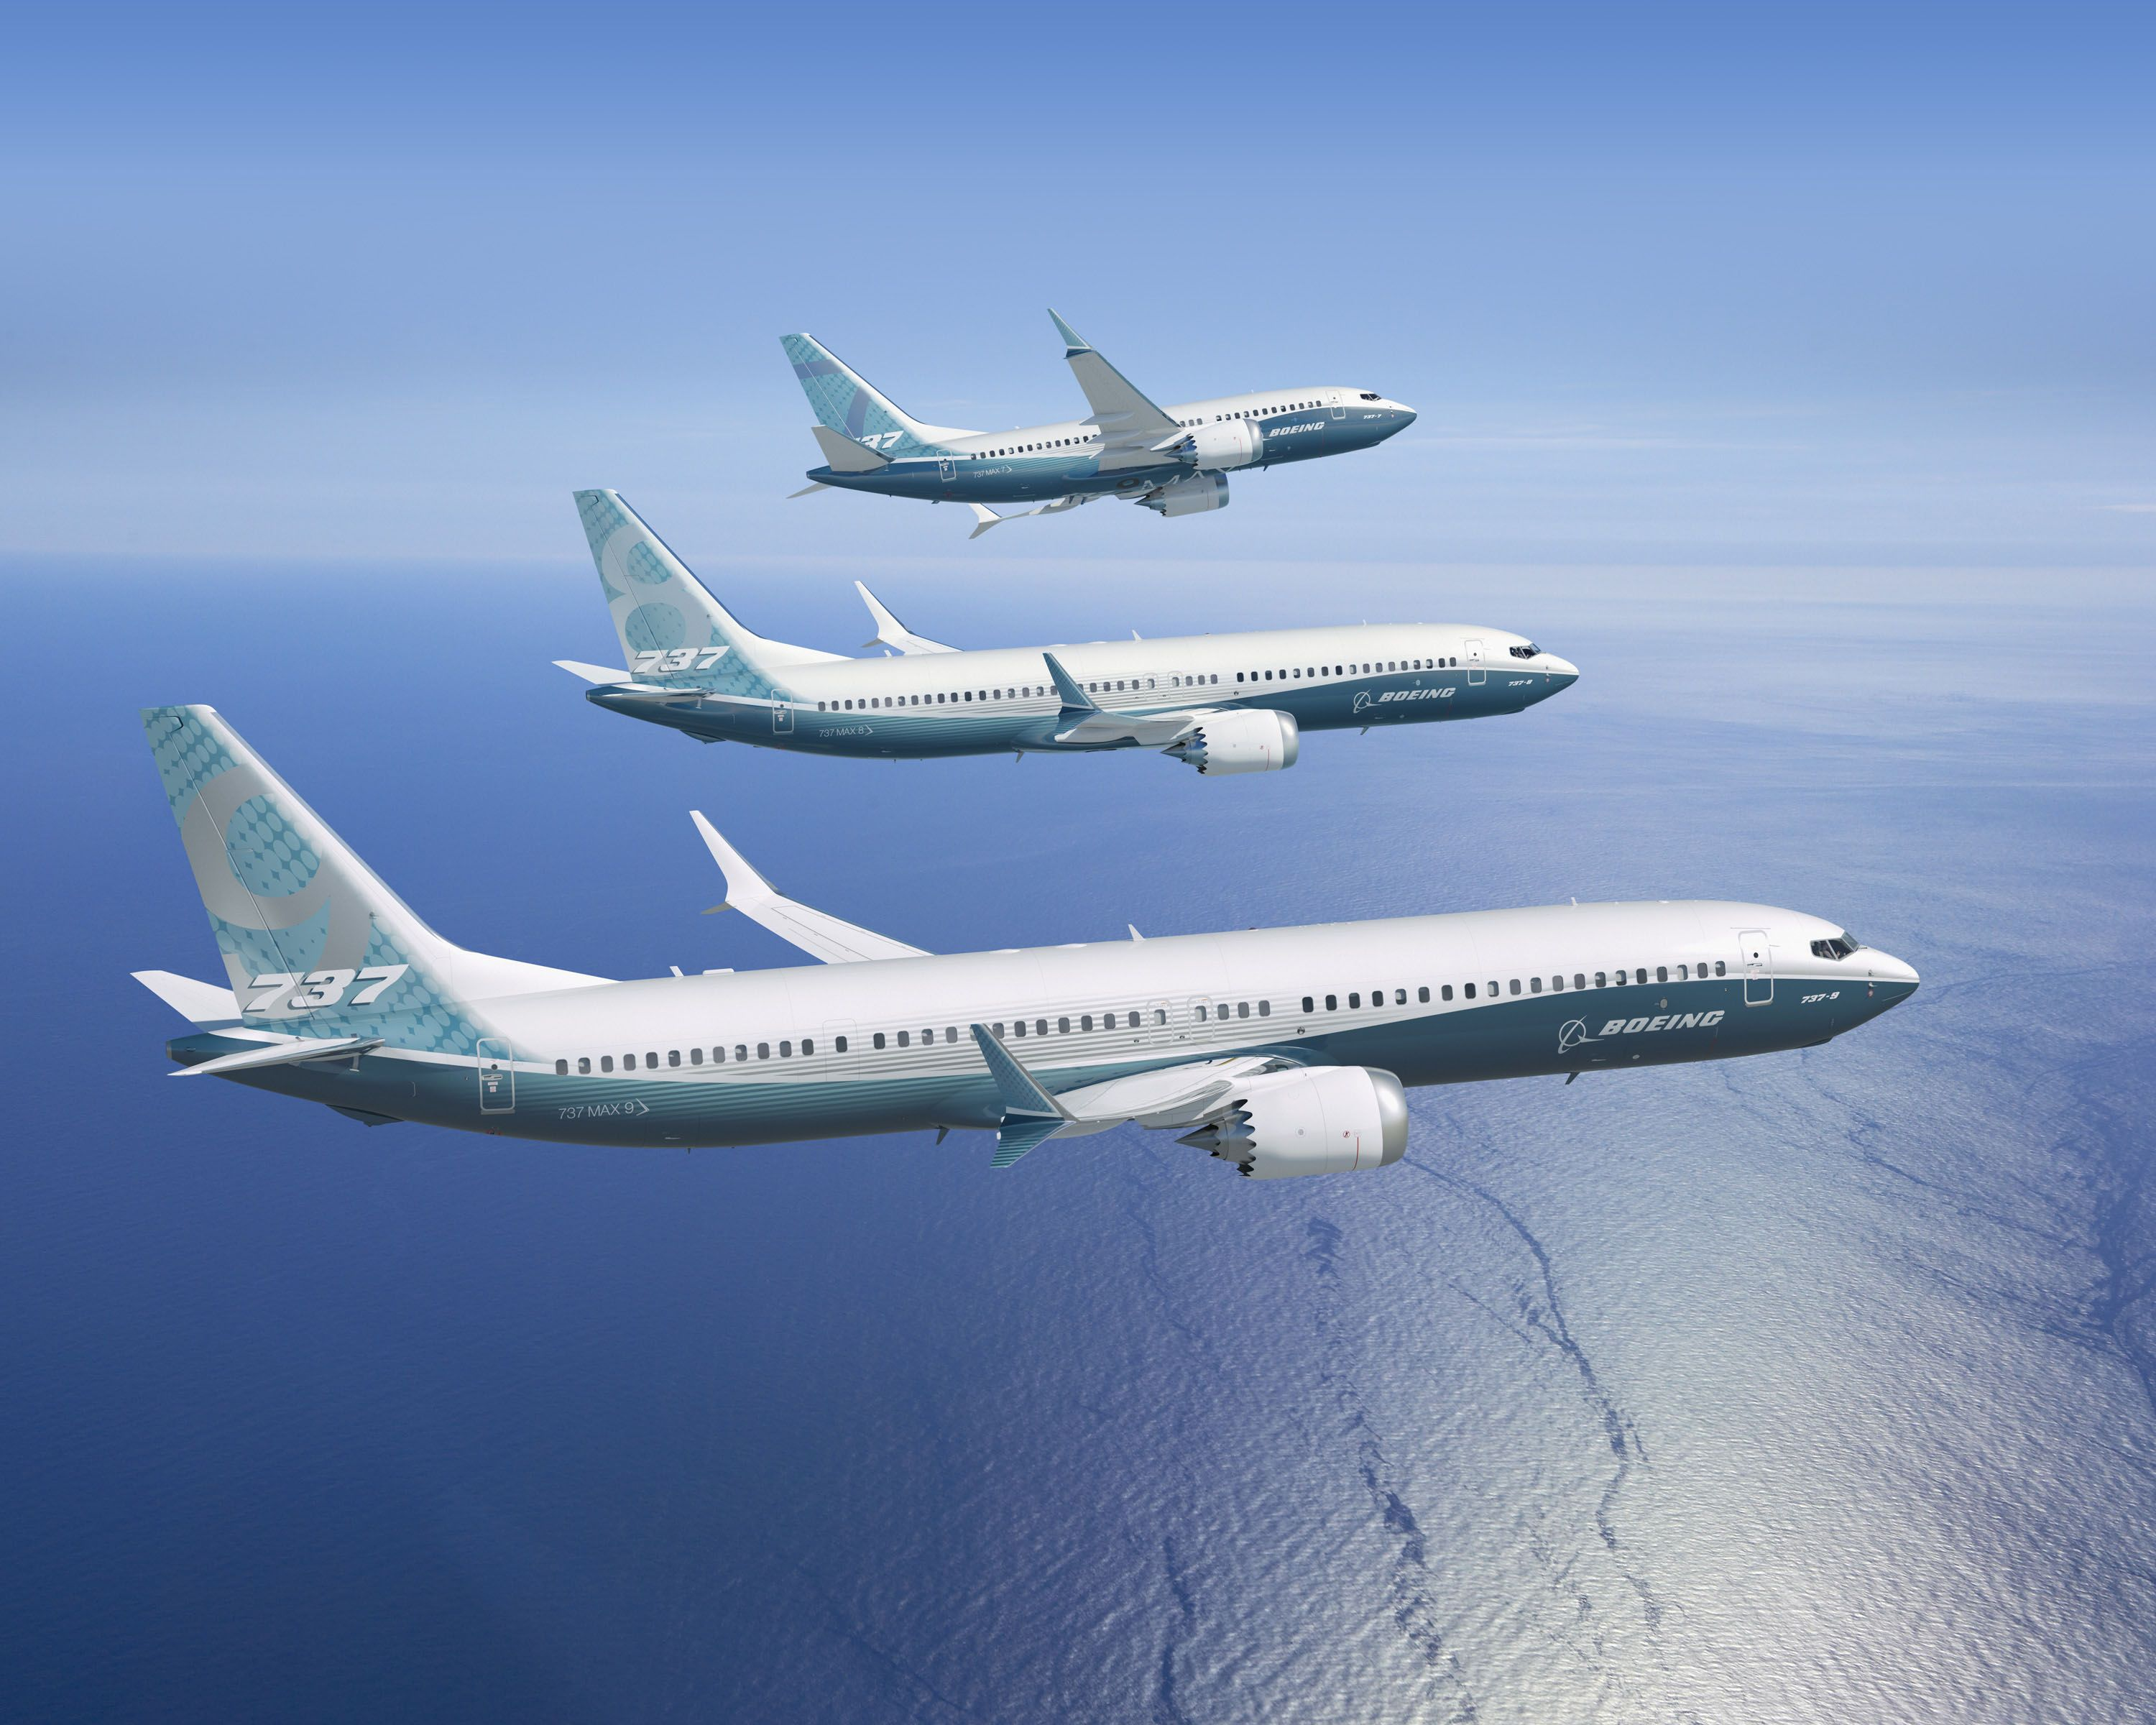 Pin by Thomas McGregor on Airlines | Boeing aircraft